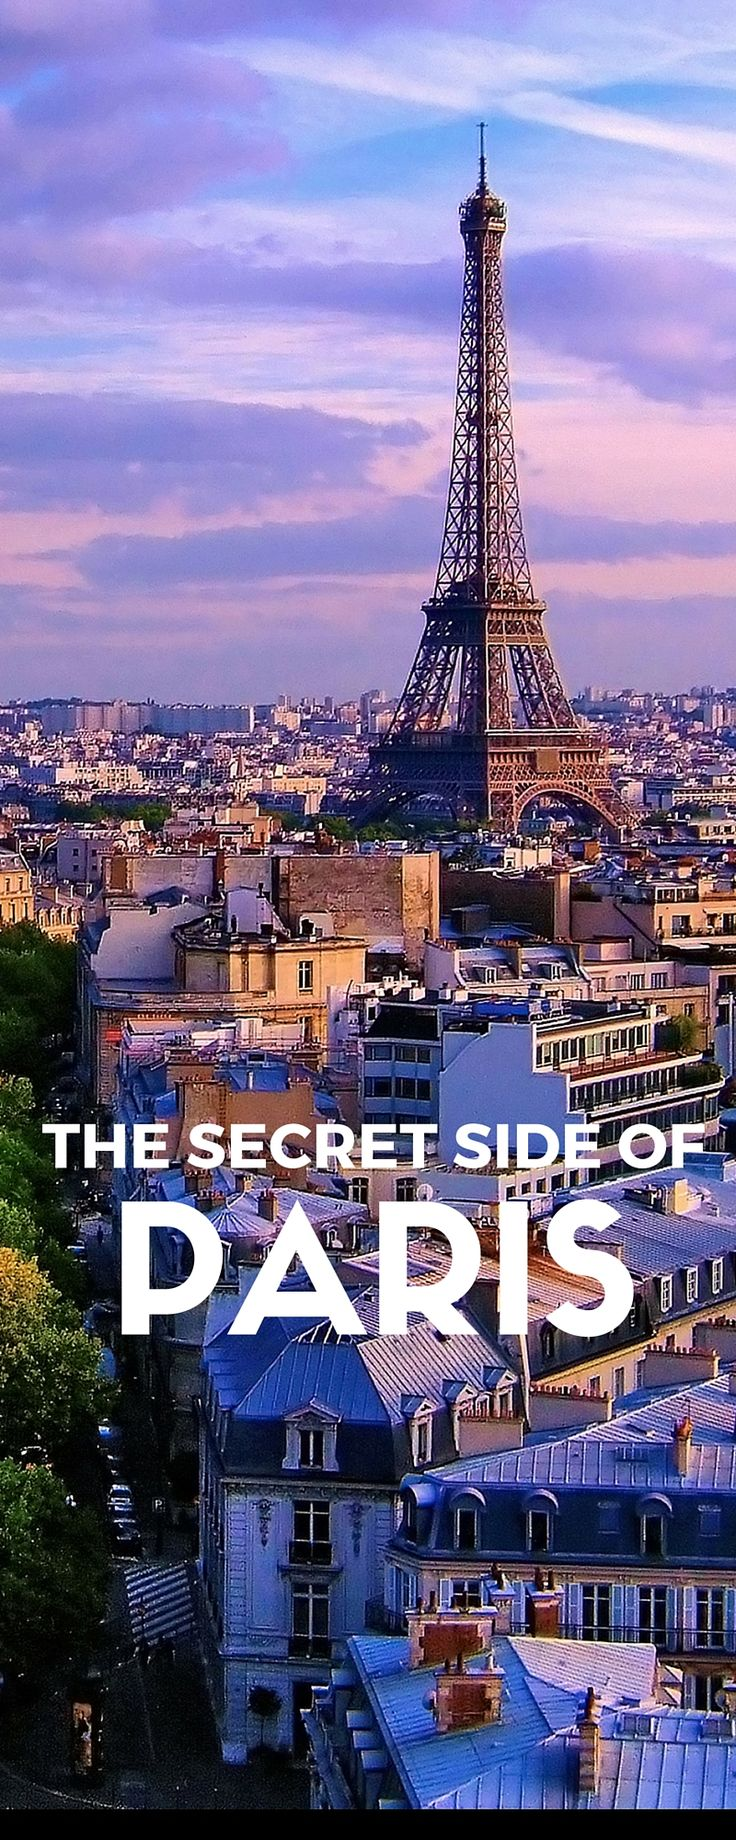 Explore the hidden side of Paris with us! http://crazzzytravel.com/paris-hidden-side-2014/